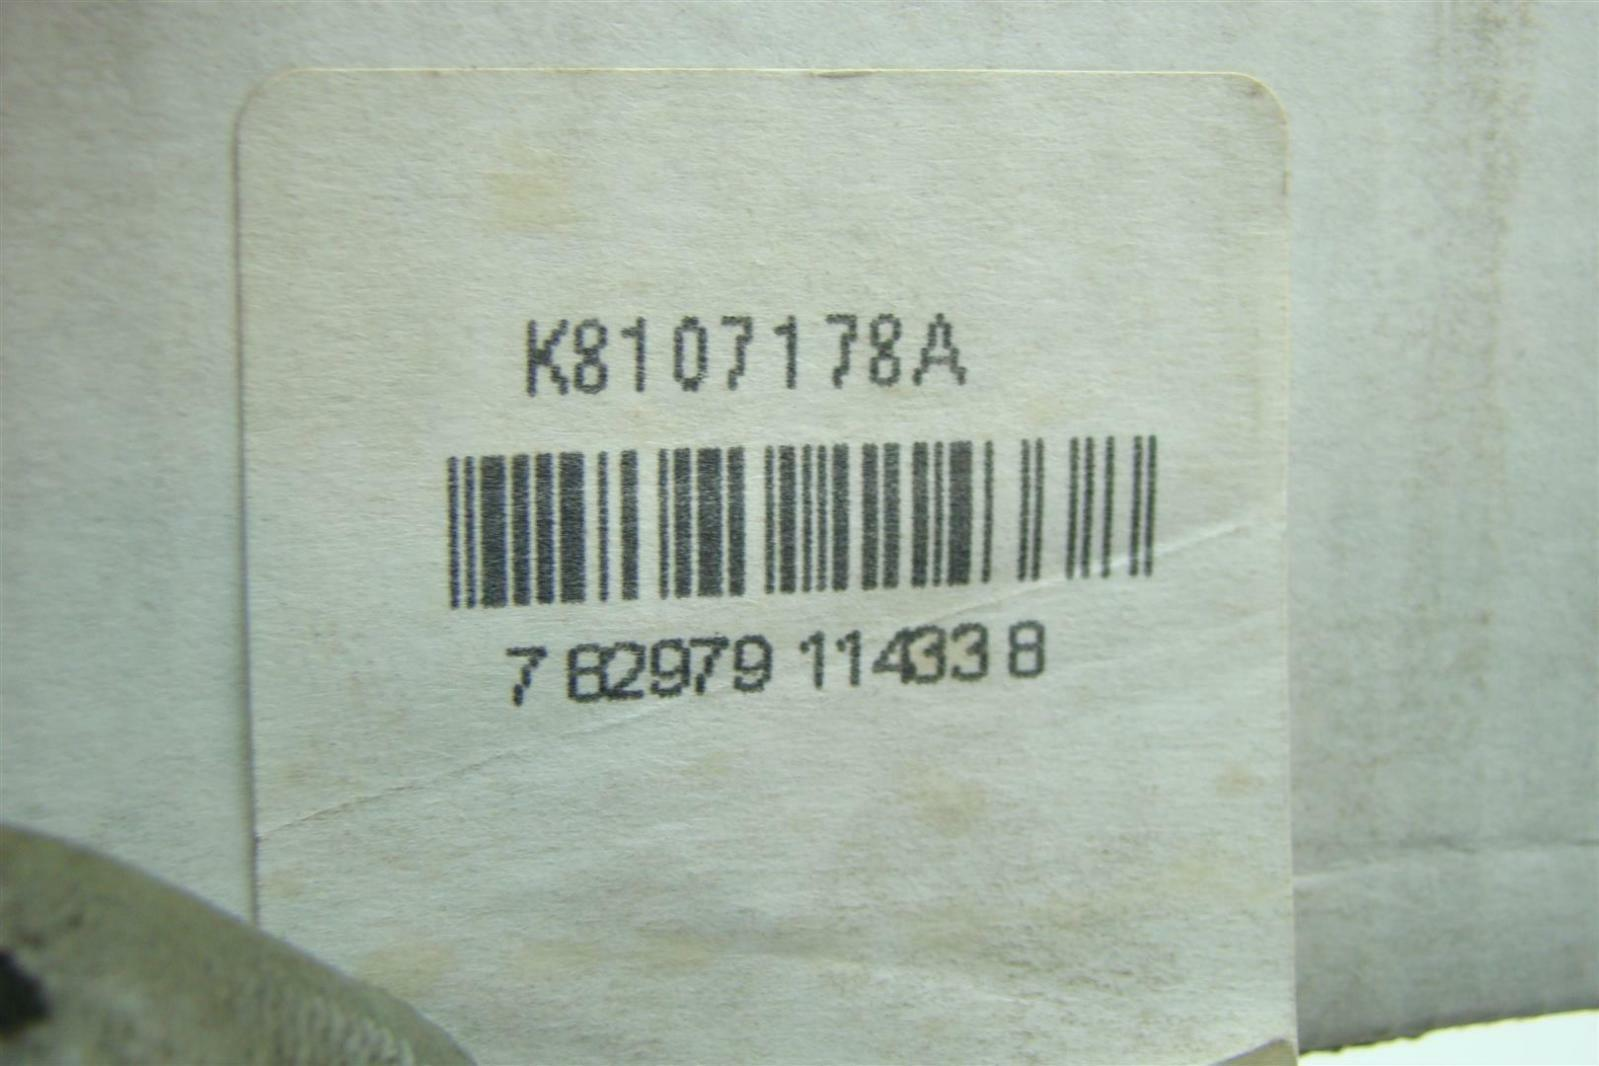 Lamp Replacement Federal Signal Lamp Replacement 131 Series K8107178a Ebay